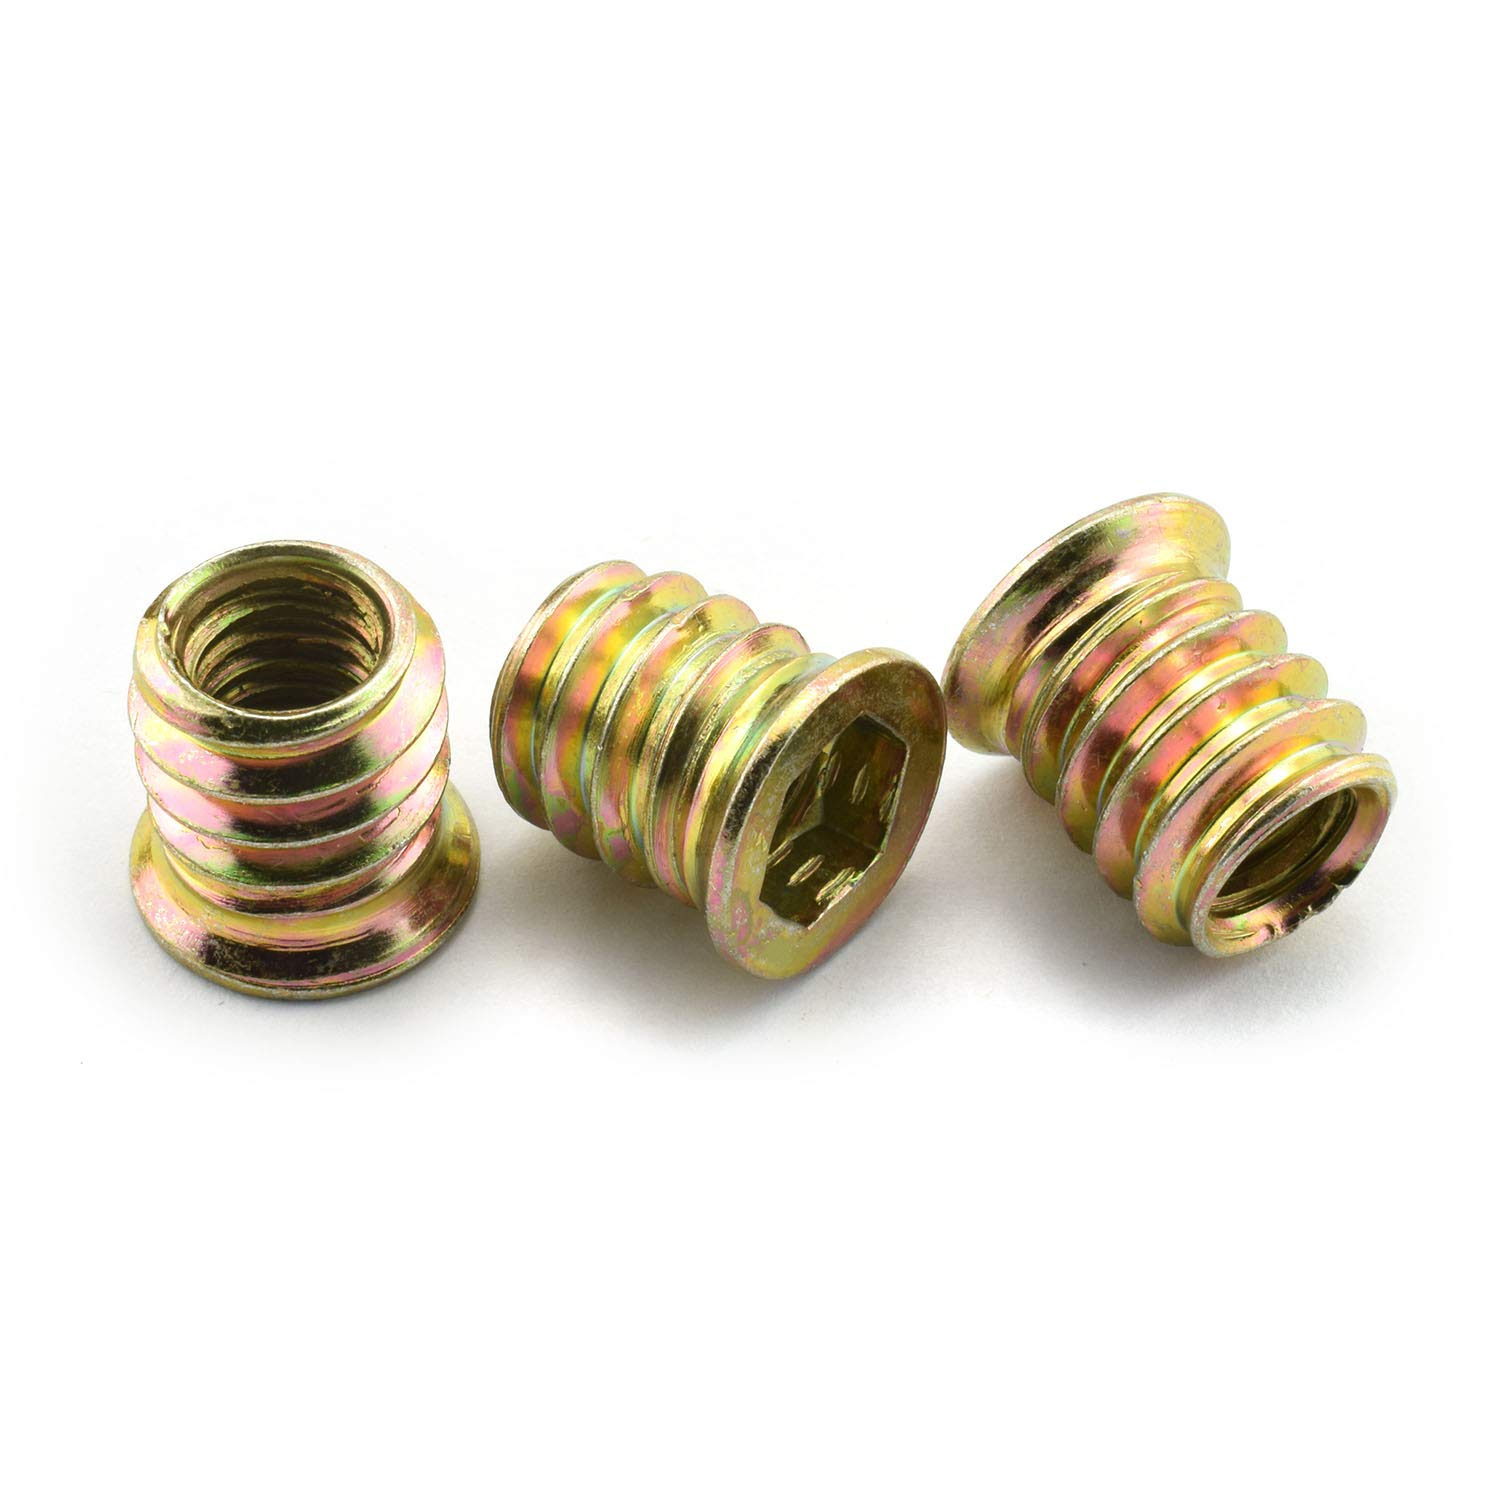 LQ Industrial 30pcs 5//16-18 15mm Furniture Screw-in Nut Carbon Steel Color Zinc Plated Bolt Fastener Connector Hex Socket Drive Threaded Insert Nuts for Wood Furniture